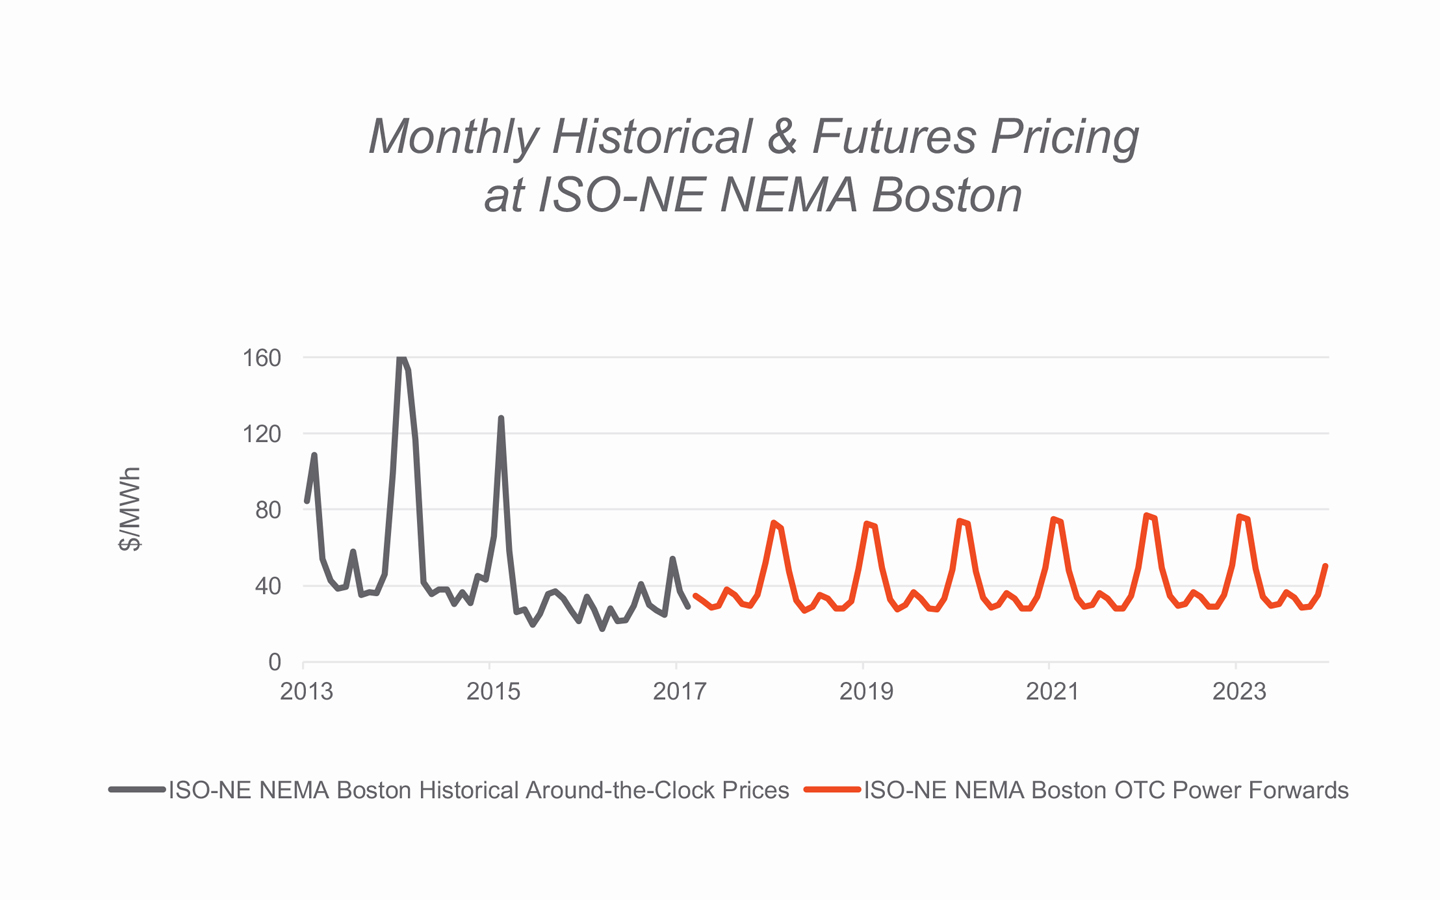 Monthly Historical & Futures Pricing at ISO-NE NEMA Boston